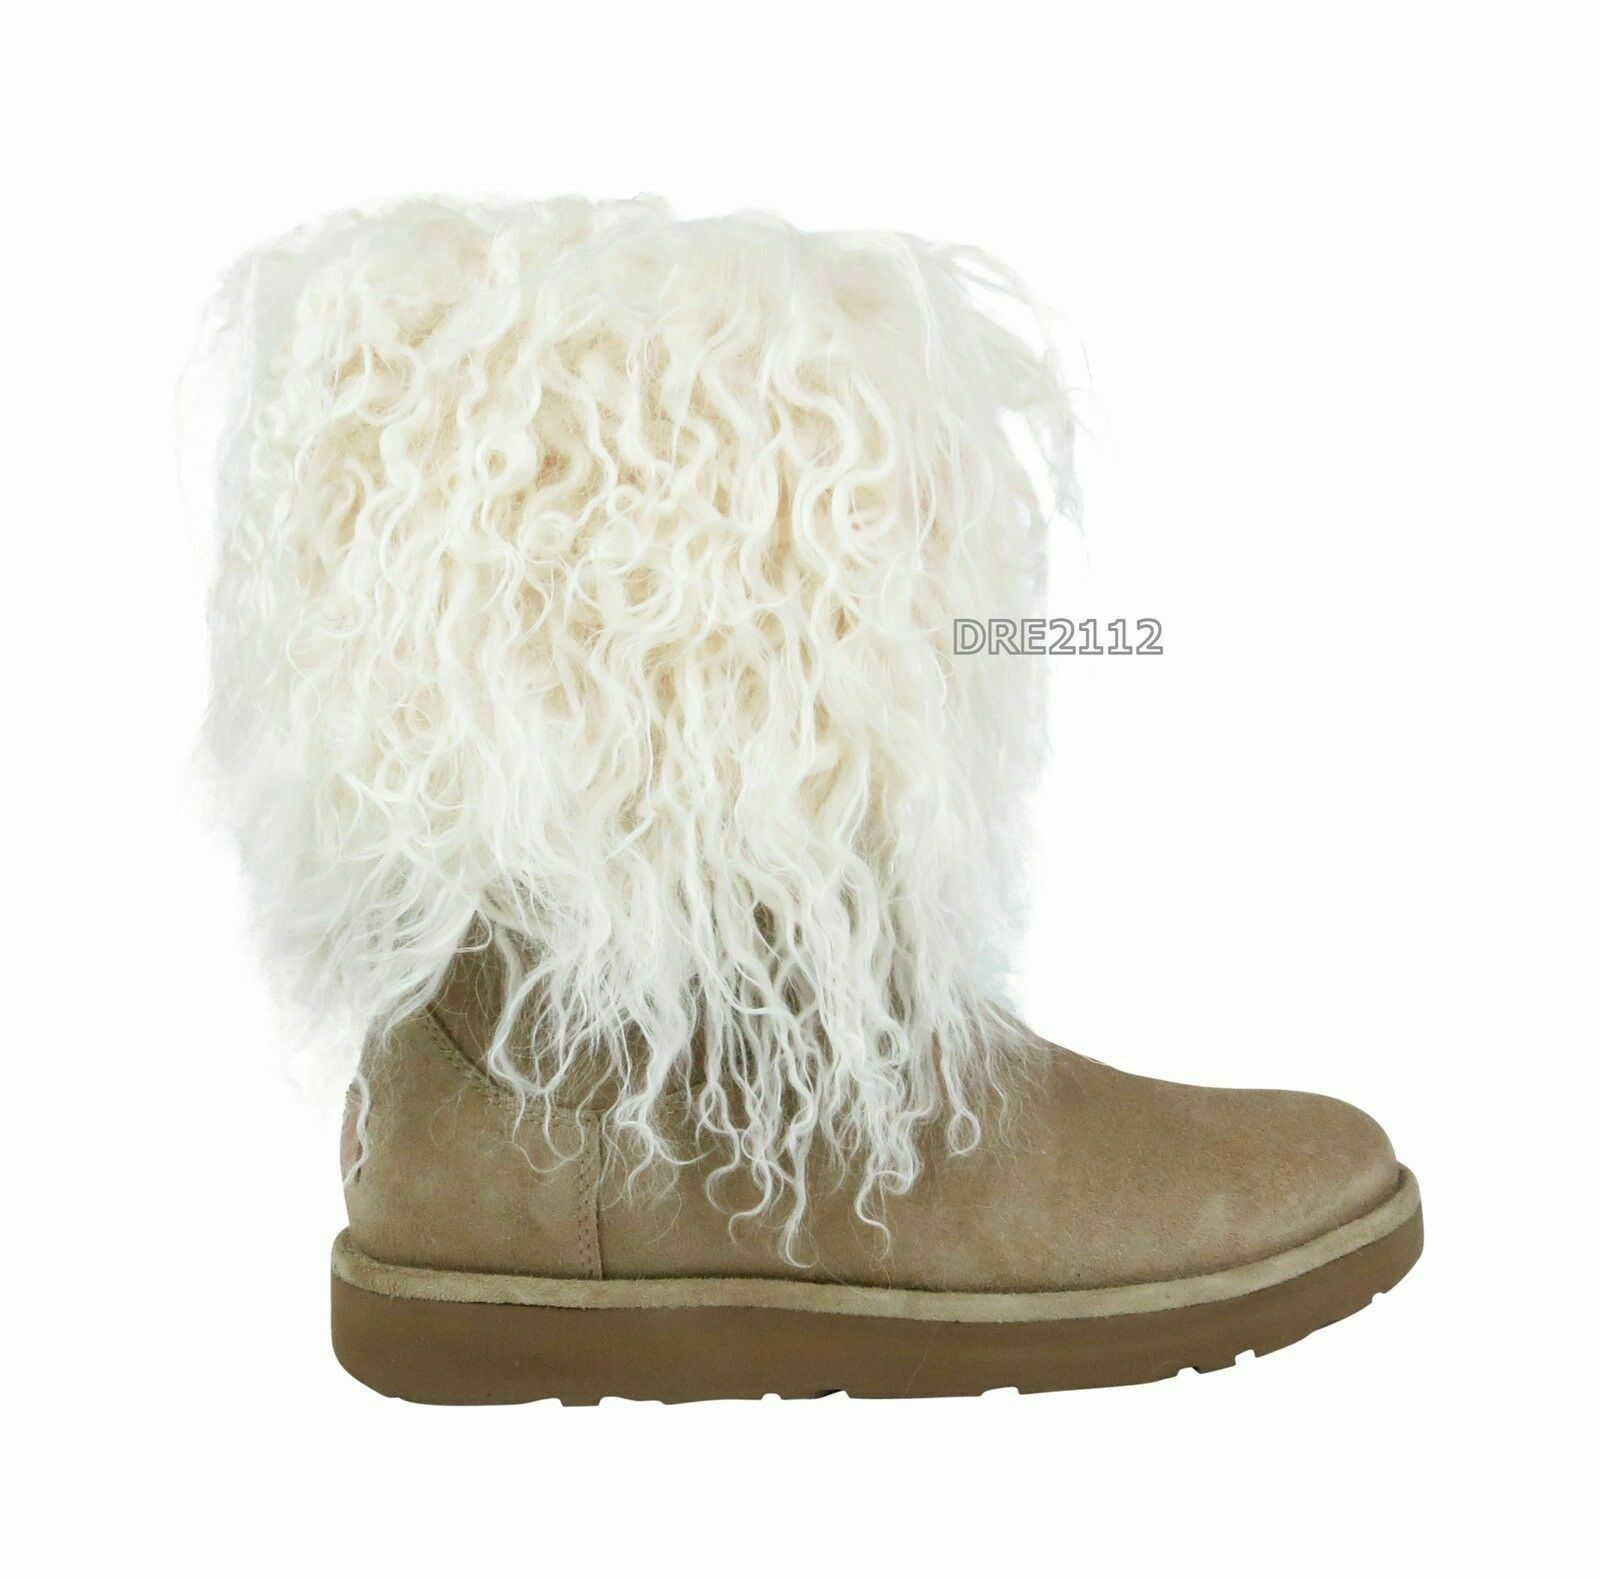 eaf0373511a UGG Lida Mongolian Sheepskin Cuff Natural Suede Classic BOOTS Size US 5  Womens